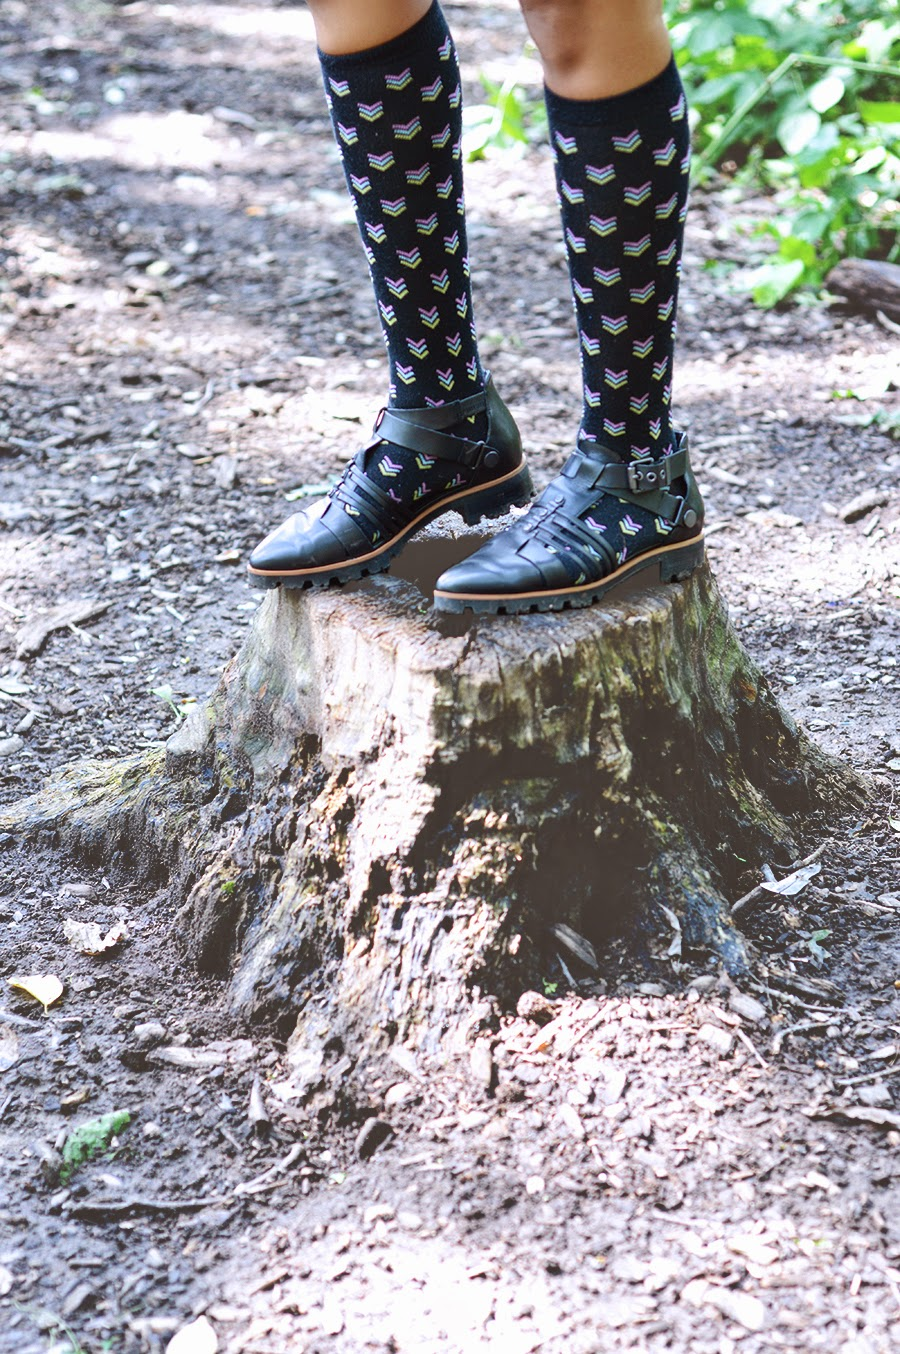 Indie fashion blogger Anais Alexandre of Down to Stars rocks luxury rebel sandals on her outdoor nature adventure